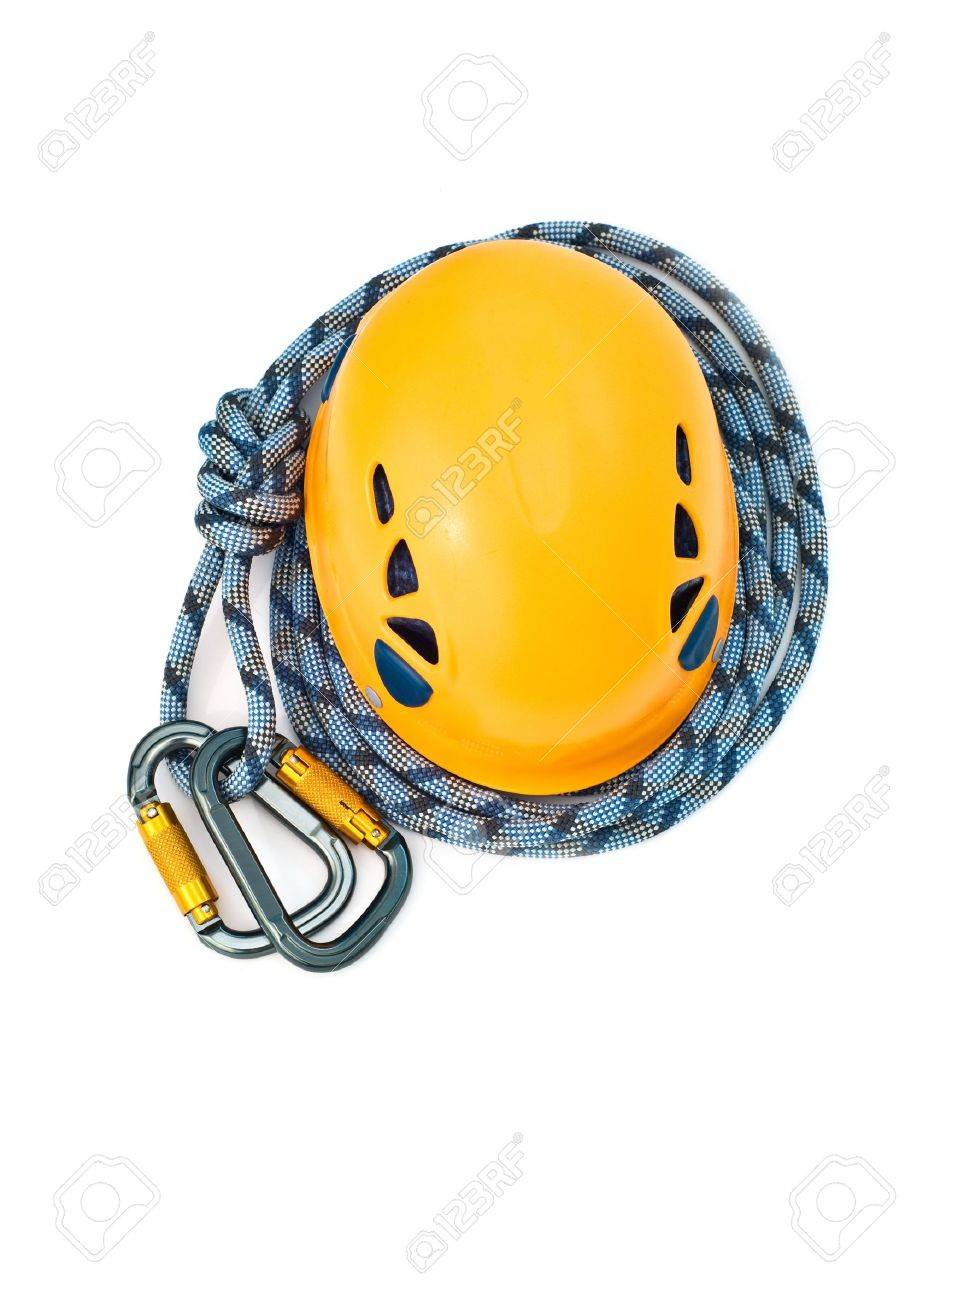 Isolated new climbing equipment - carabiners without scratches, orange climbing helmet and blue rope Stock Photo - 5637434